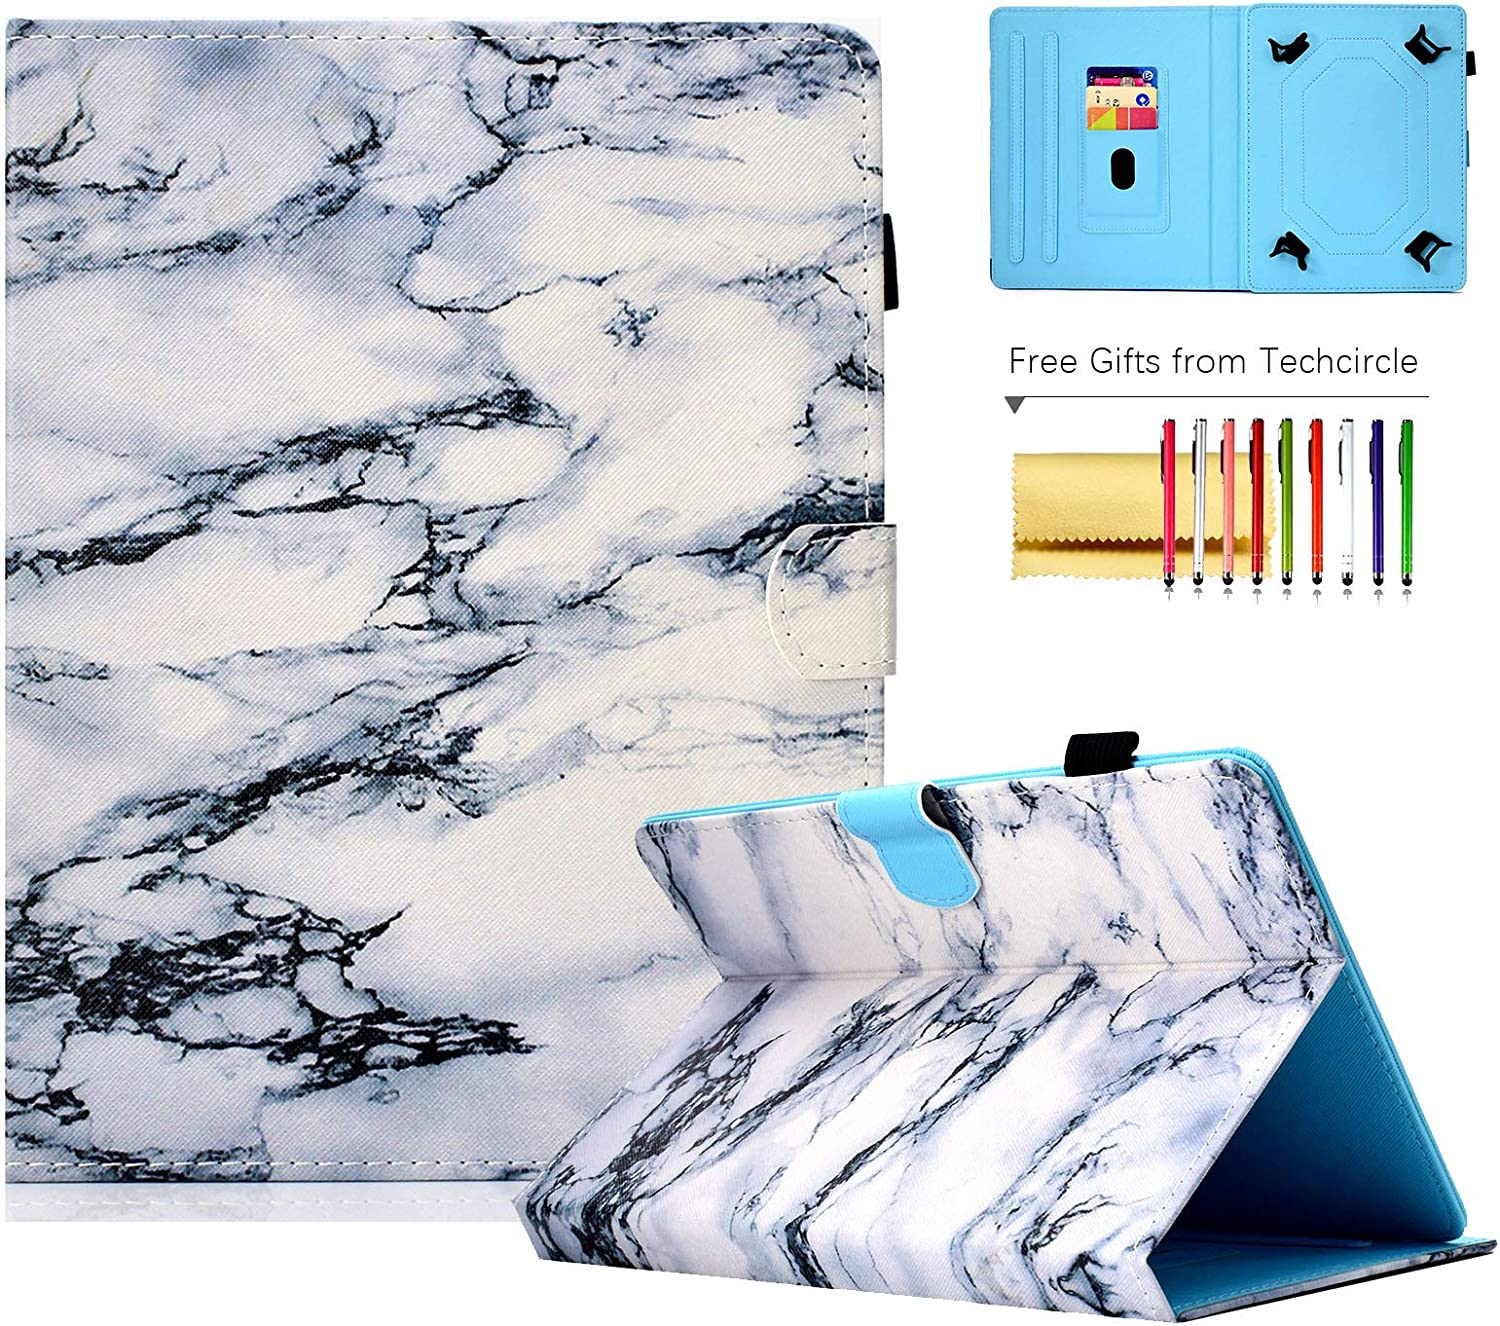 8-inch Tablet Case, Techcircle Pretty Folio Stand Cover w/ [Pencil Holder] [Card Slots] Magnetic Protective Case for Lenovo/Samsung Galaxy Tab 8.0 Series, iPad Mini 7.9, Fire HD 8, White Marble